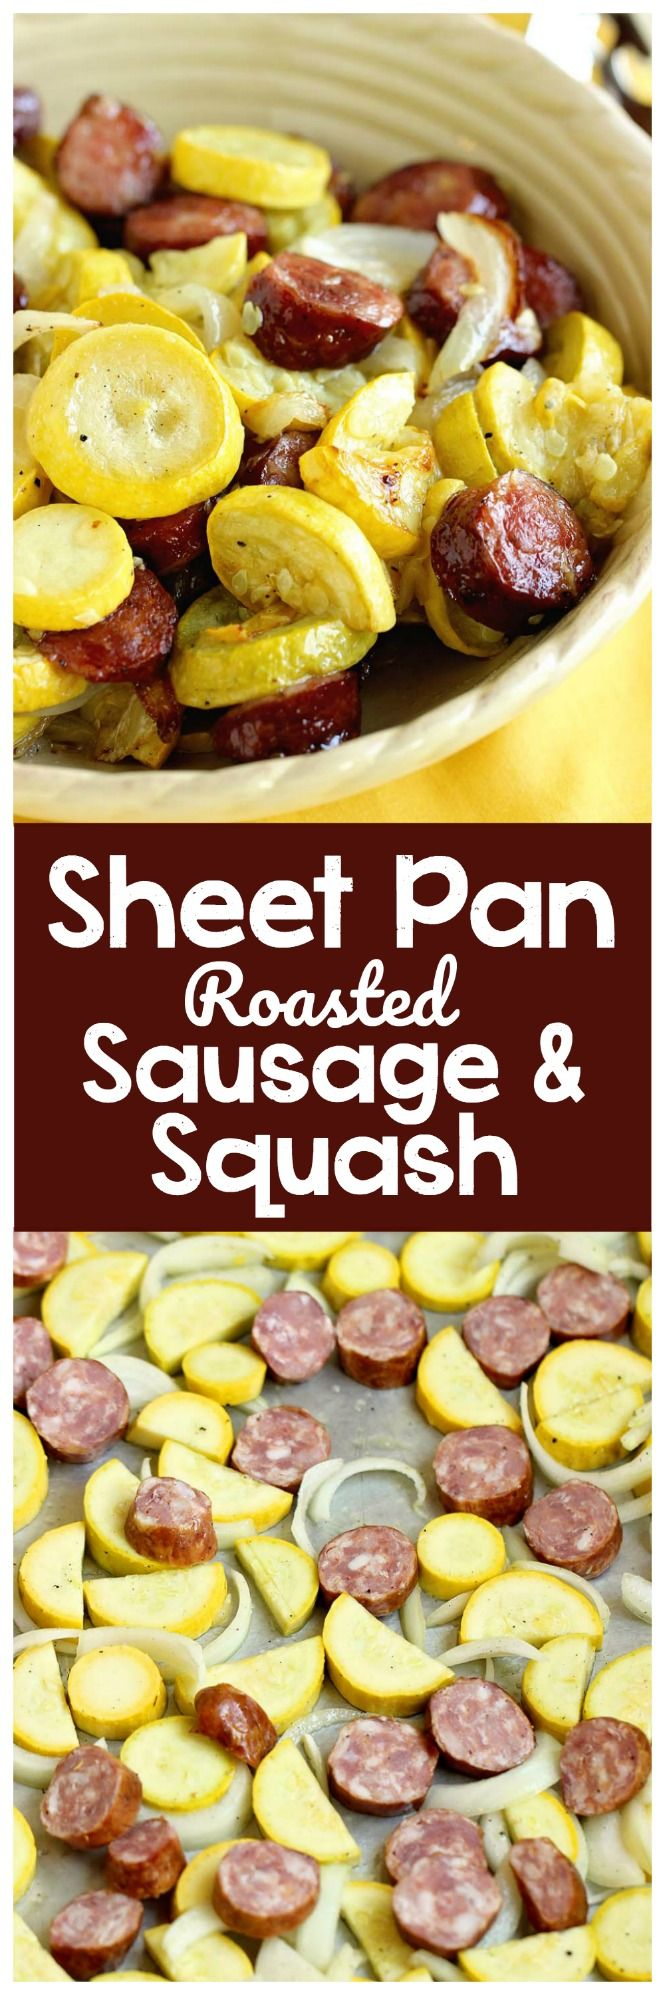 Sheet Pan Roasted Sausage and Squash - A quick and easy recipe with only a few ingredients. It's perfect as a main dish or a side dish recipe.